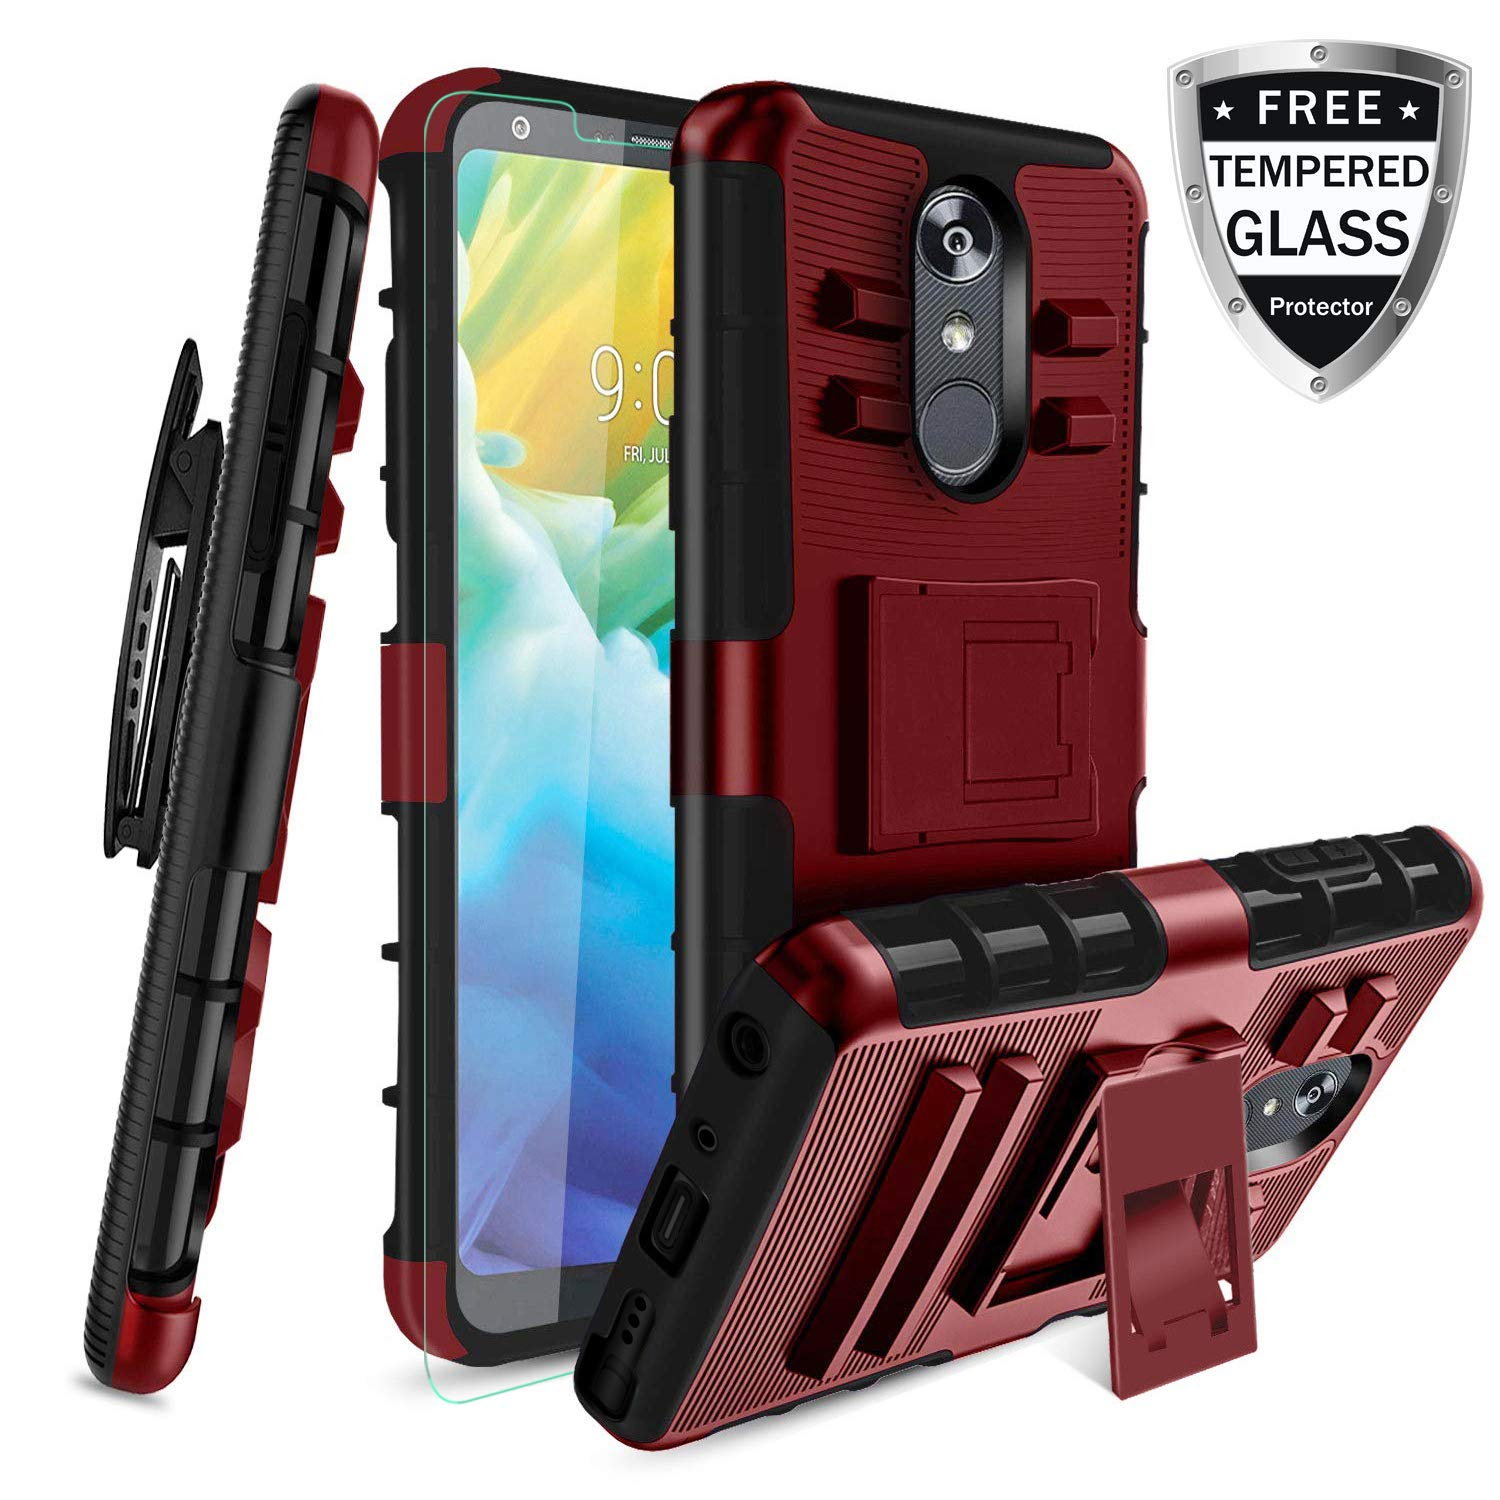 LG Stylo 4 Case, Stylo 4 Plus Case W/[Tempered Glass Screen Protector] Built-in Kickstand Full-Body Shockproof PC Back &Soft TPU Inner Armor Swivel Belt Clip Holster Heavy Duty Protective Case,PC-Red